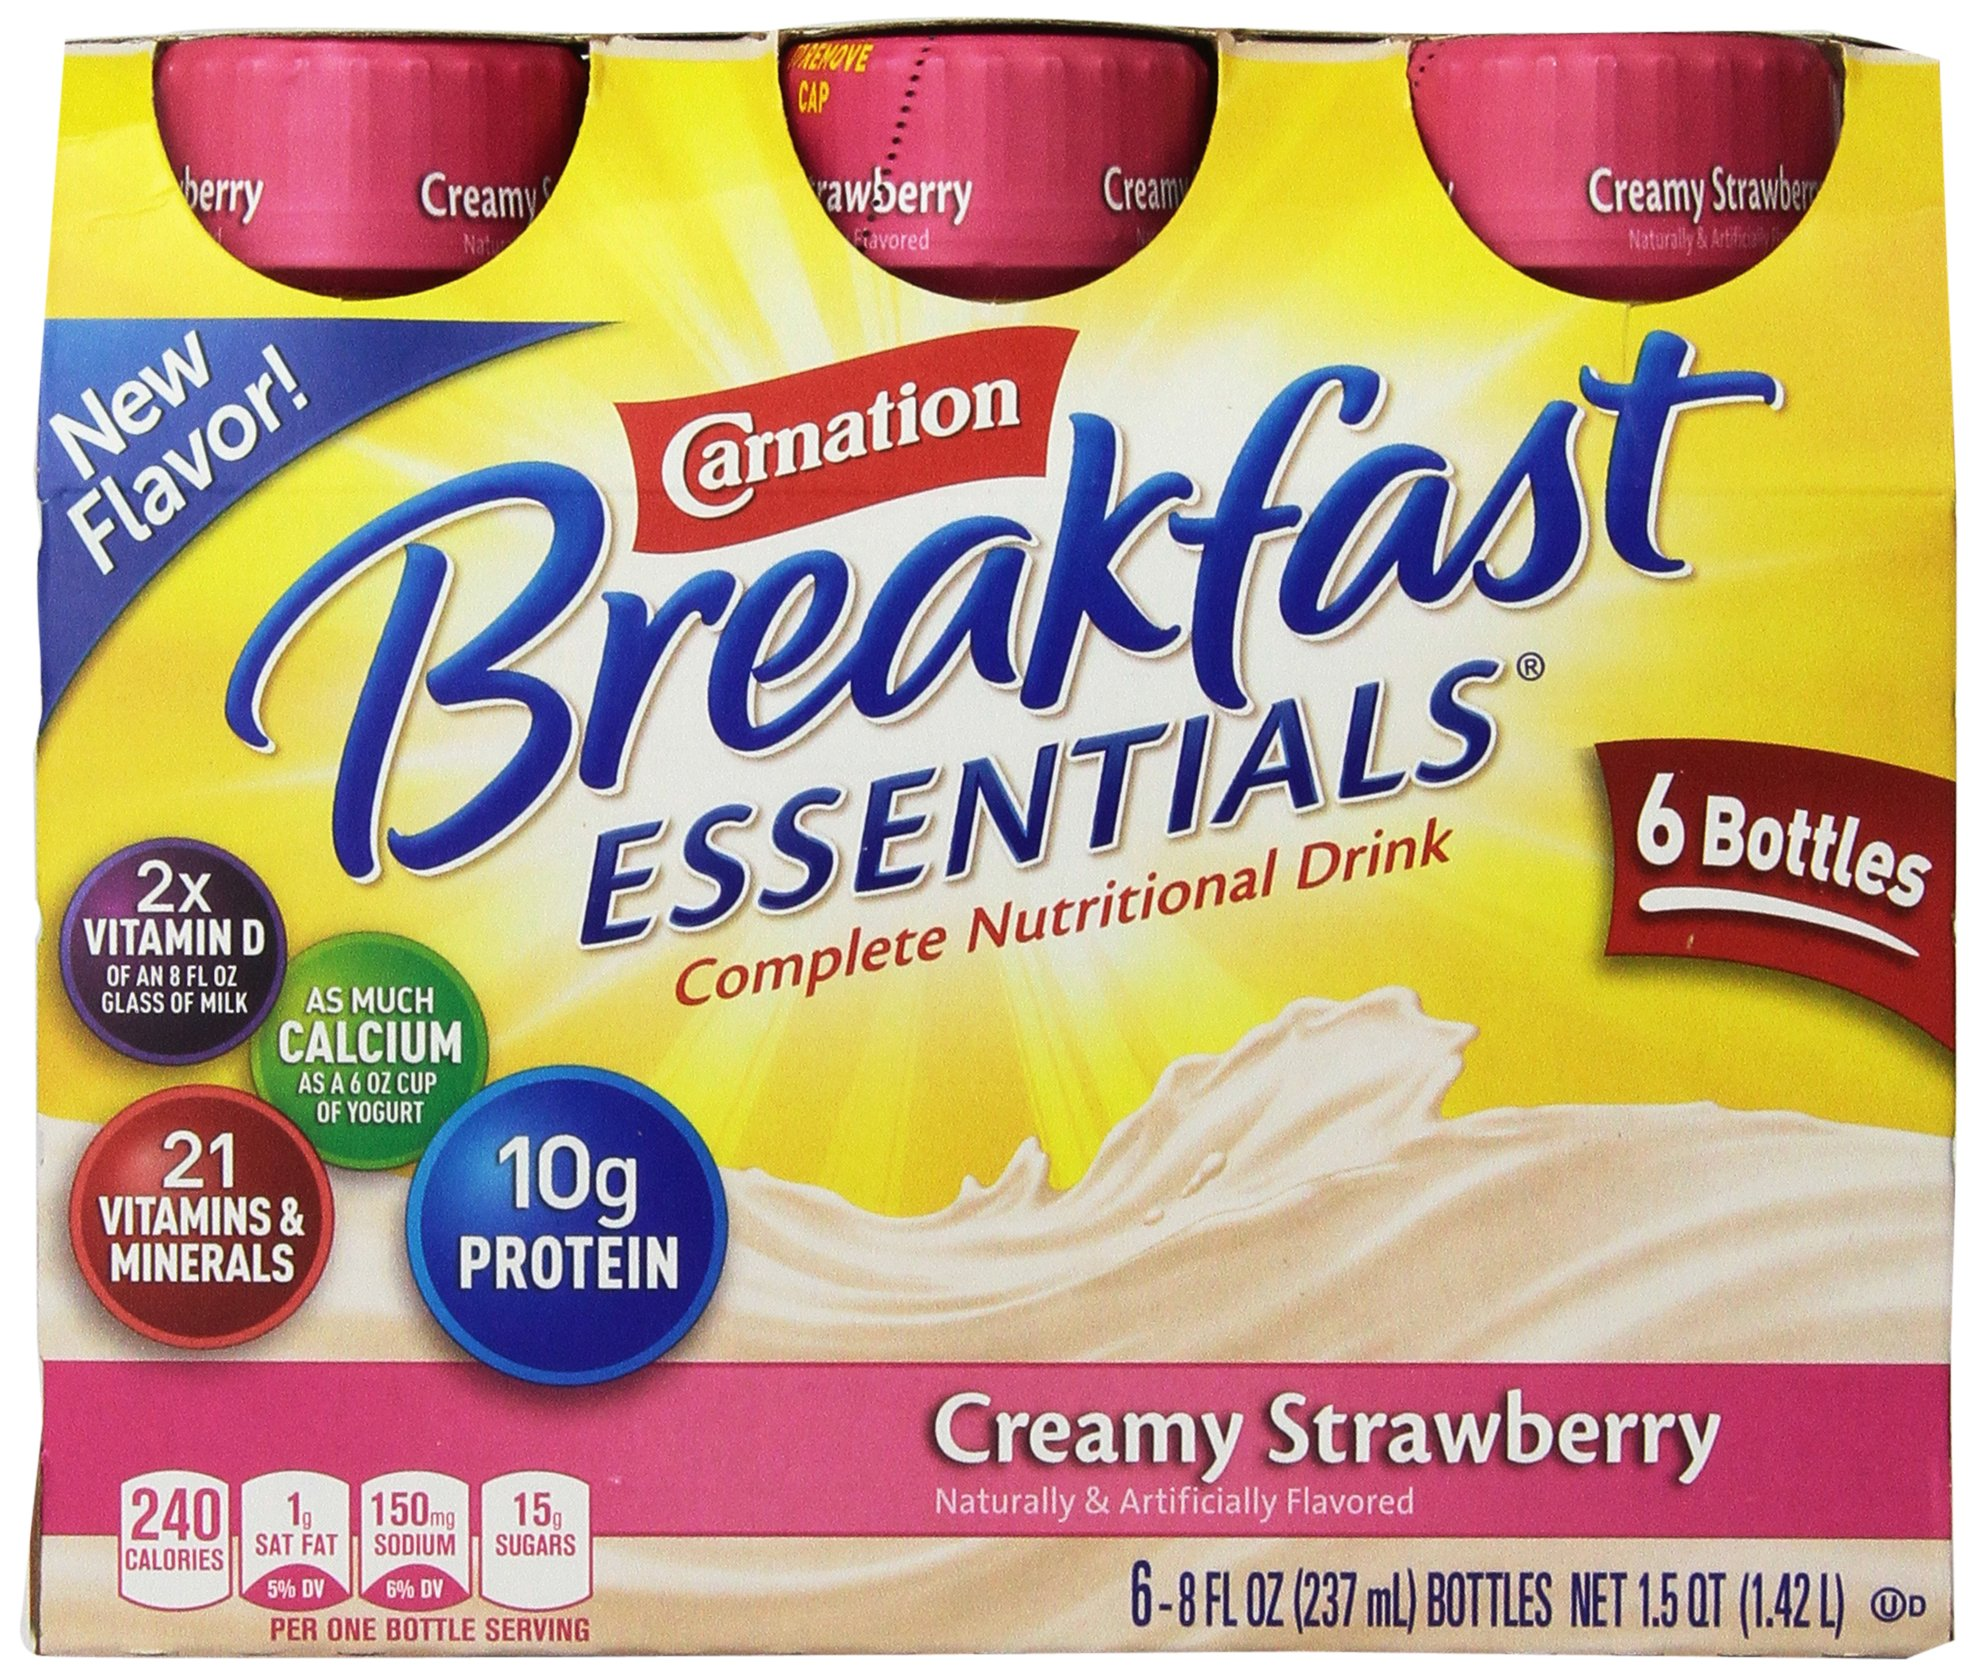 Carnation Breakfast Essentials Ready to Drink, Strawberry, 8 Fluid Ounce (Pack of 24) by Carnation Breakfast Essentials